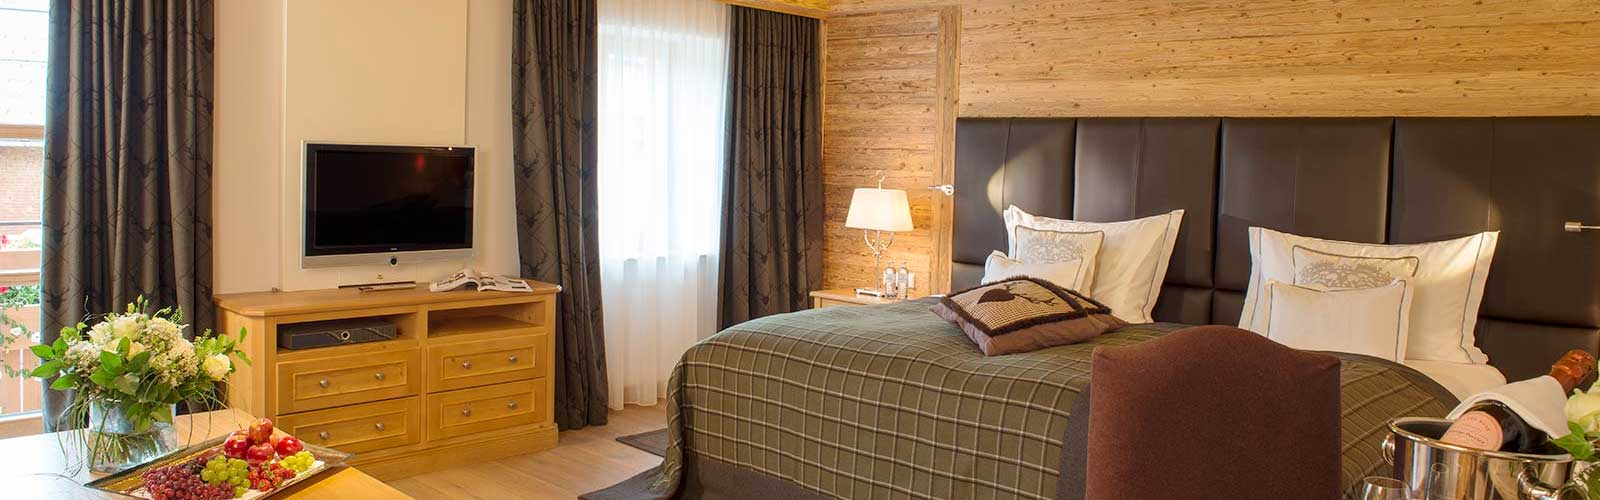 Junior Suite, 50 m2